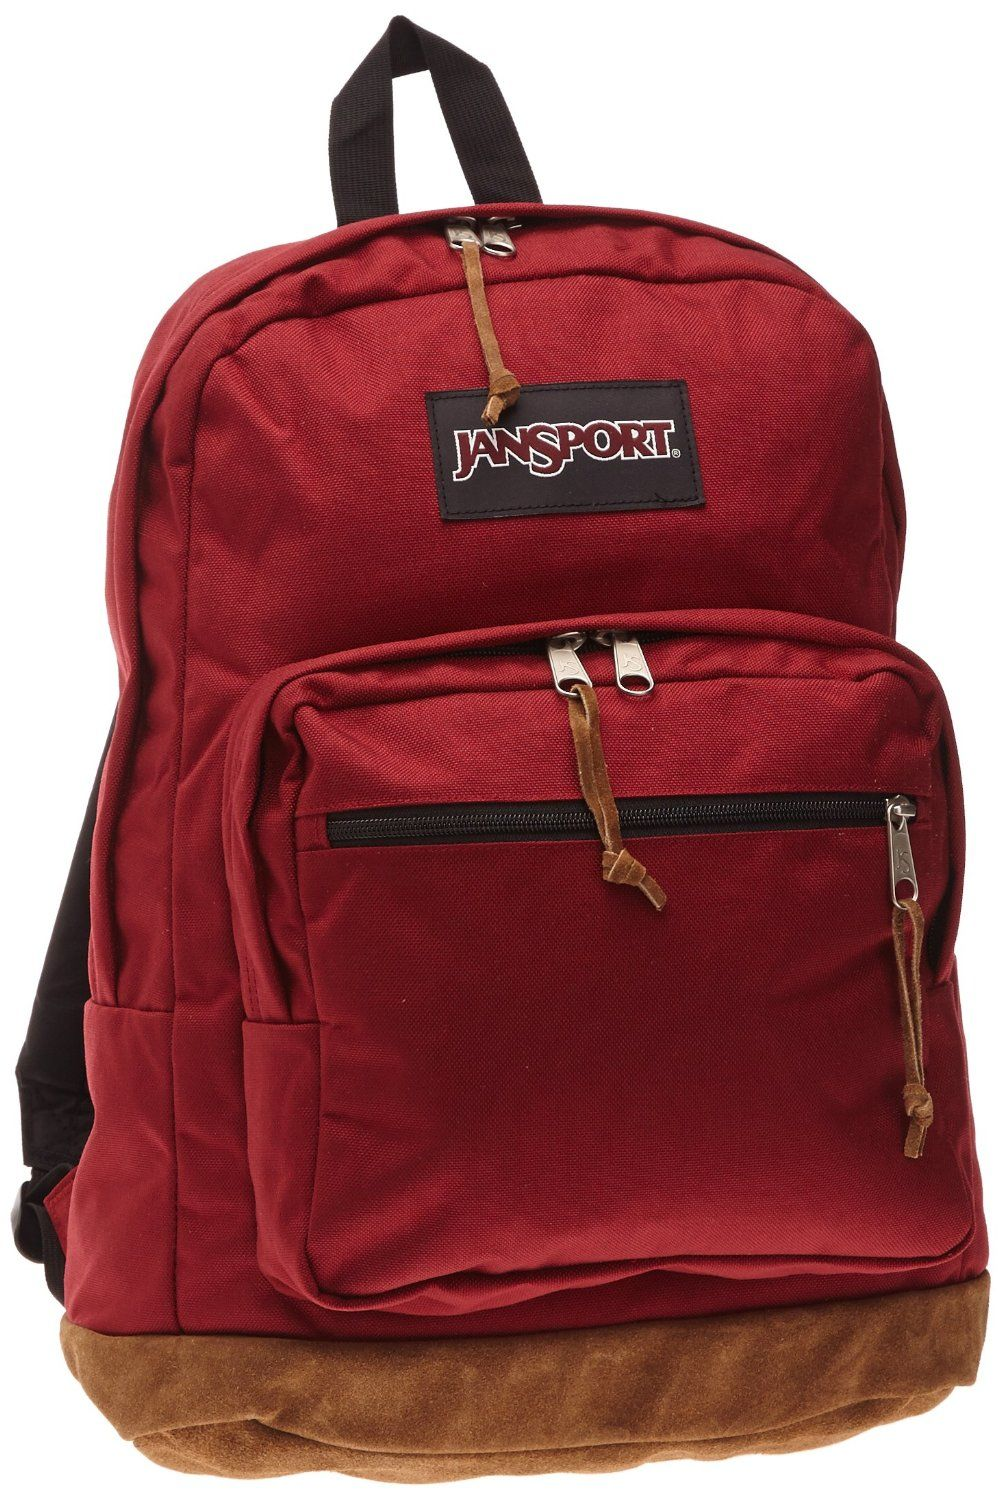 Amazon.com: JanSport Right Pack: Sports & Outdoors | Back To ...